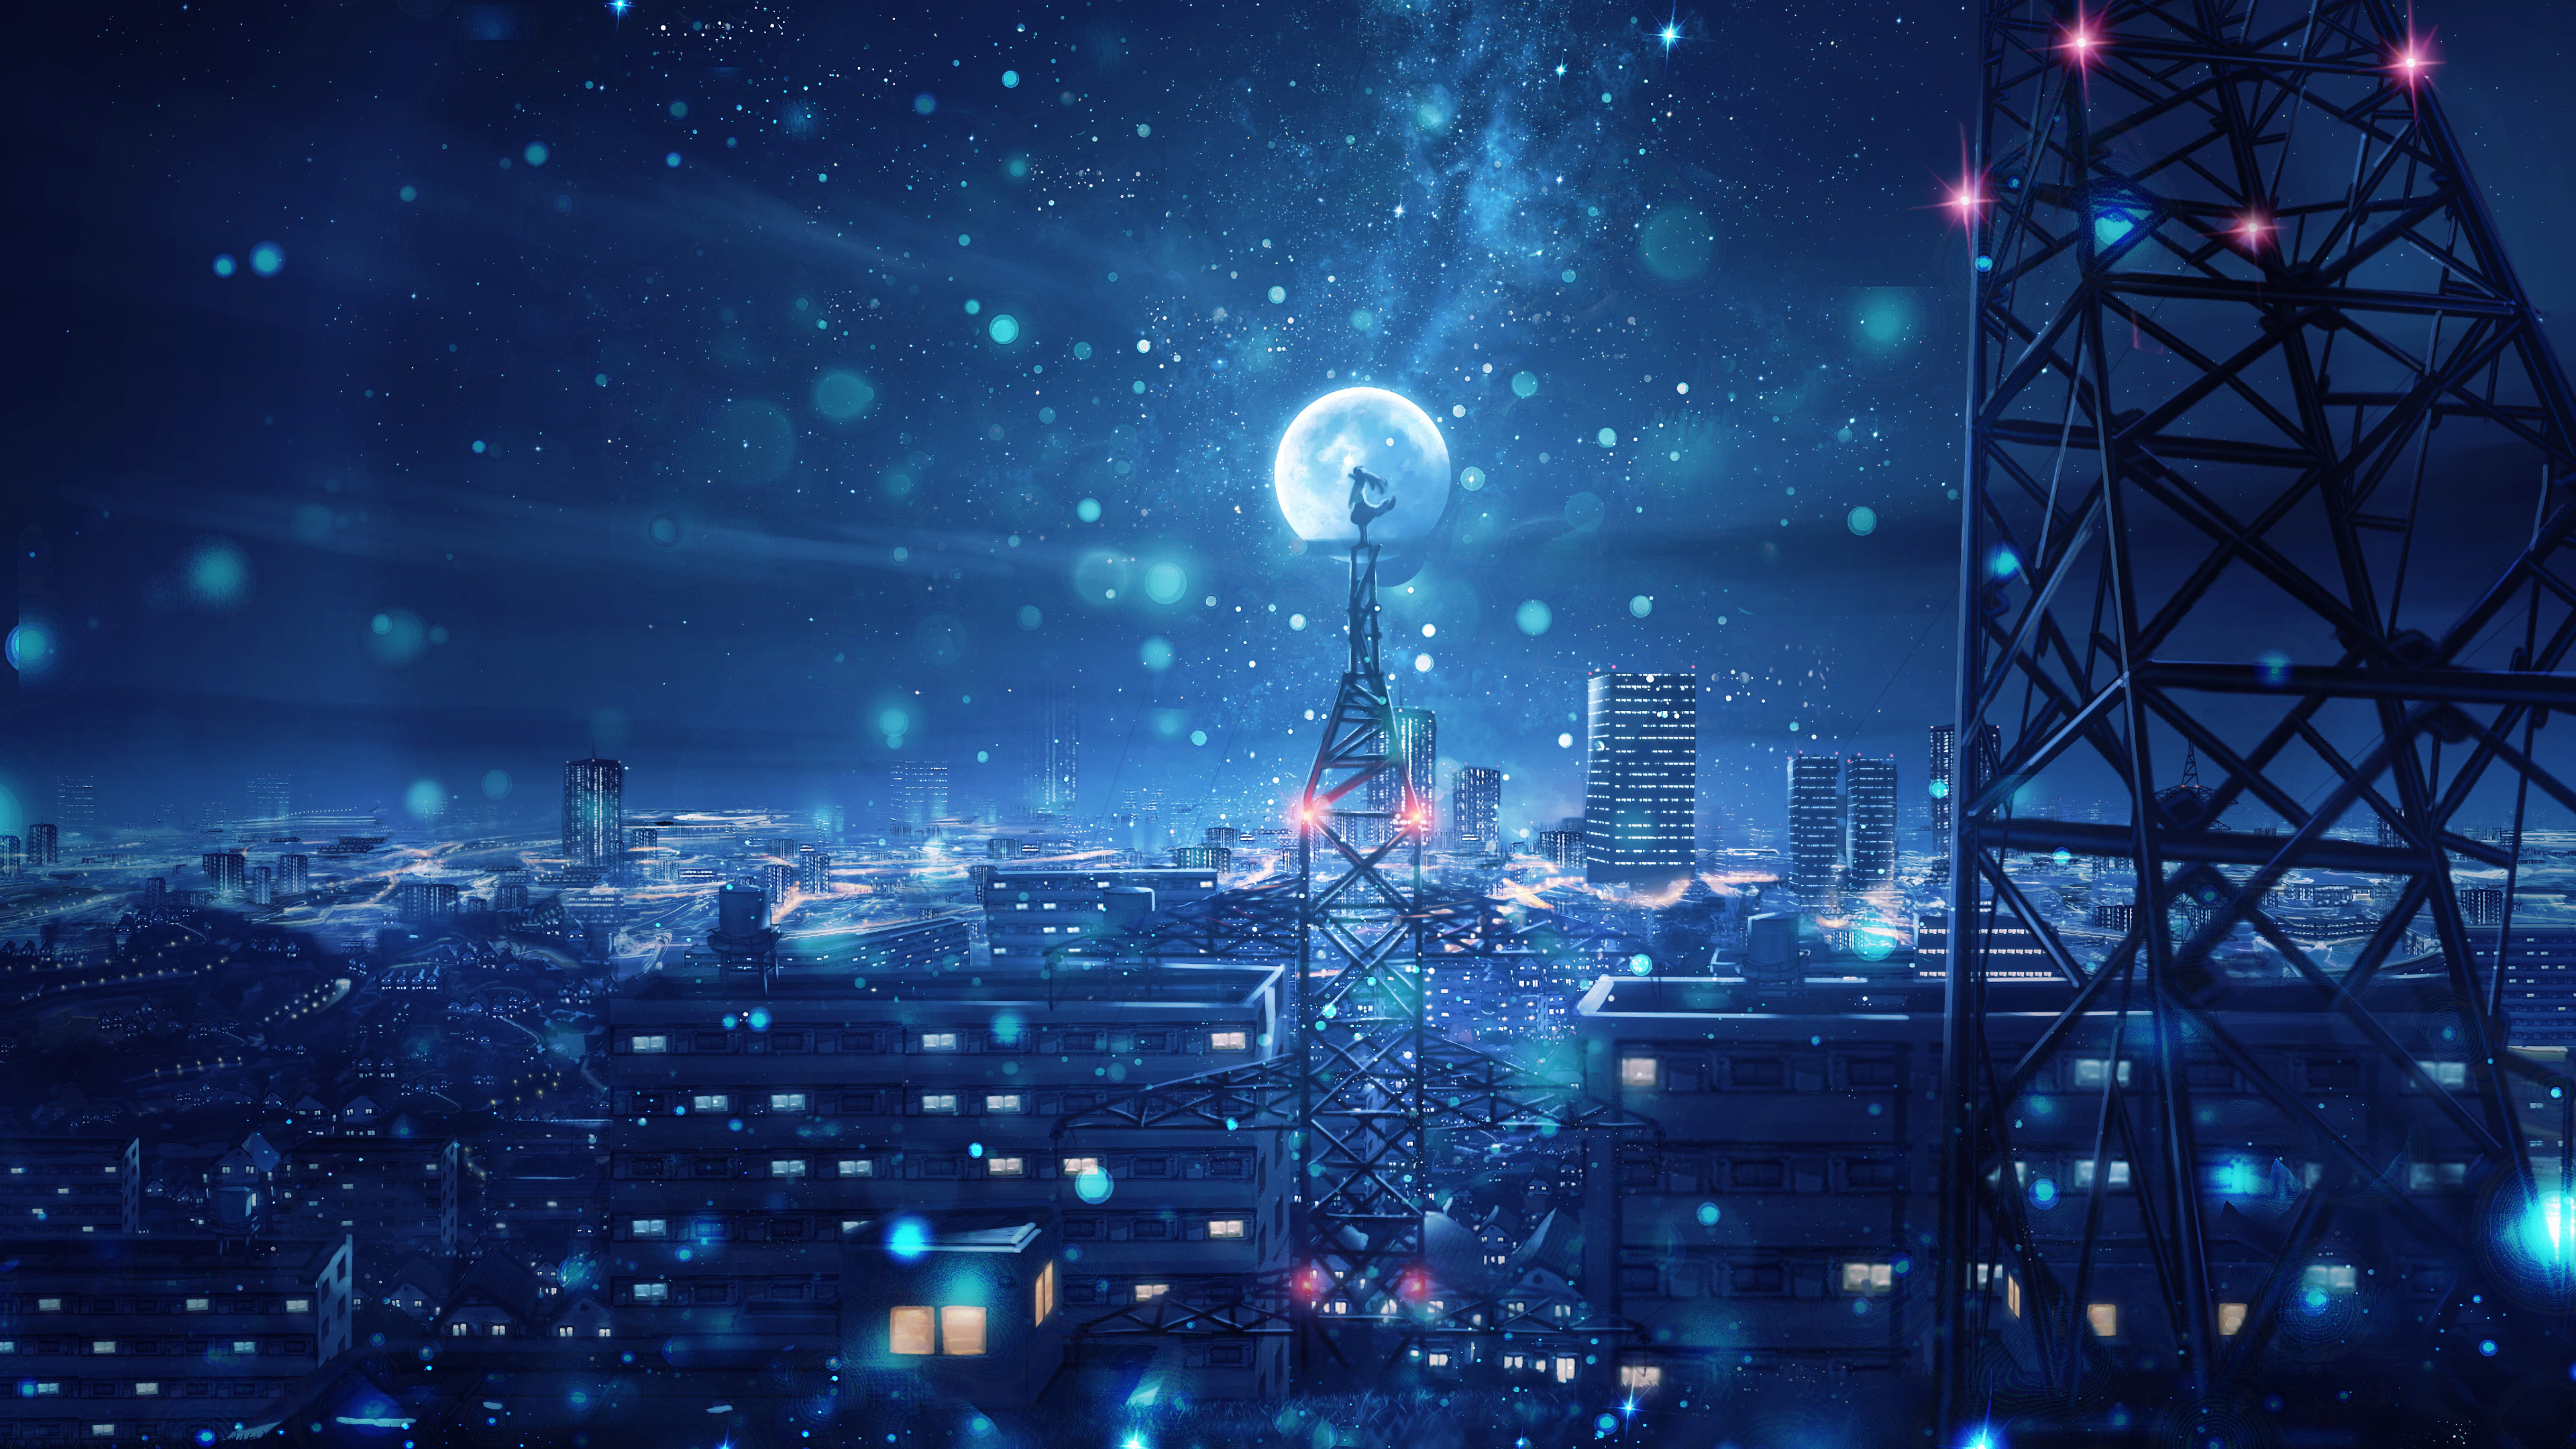 night sky city stars anime scenery uhdpaper.com 4K 135